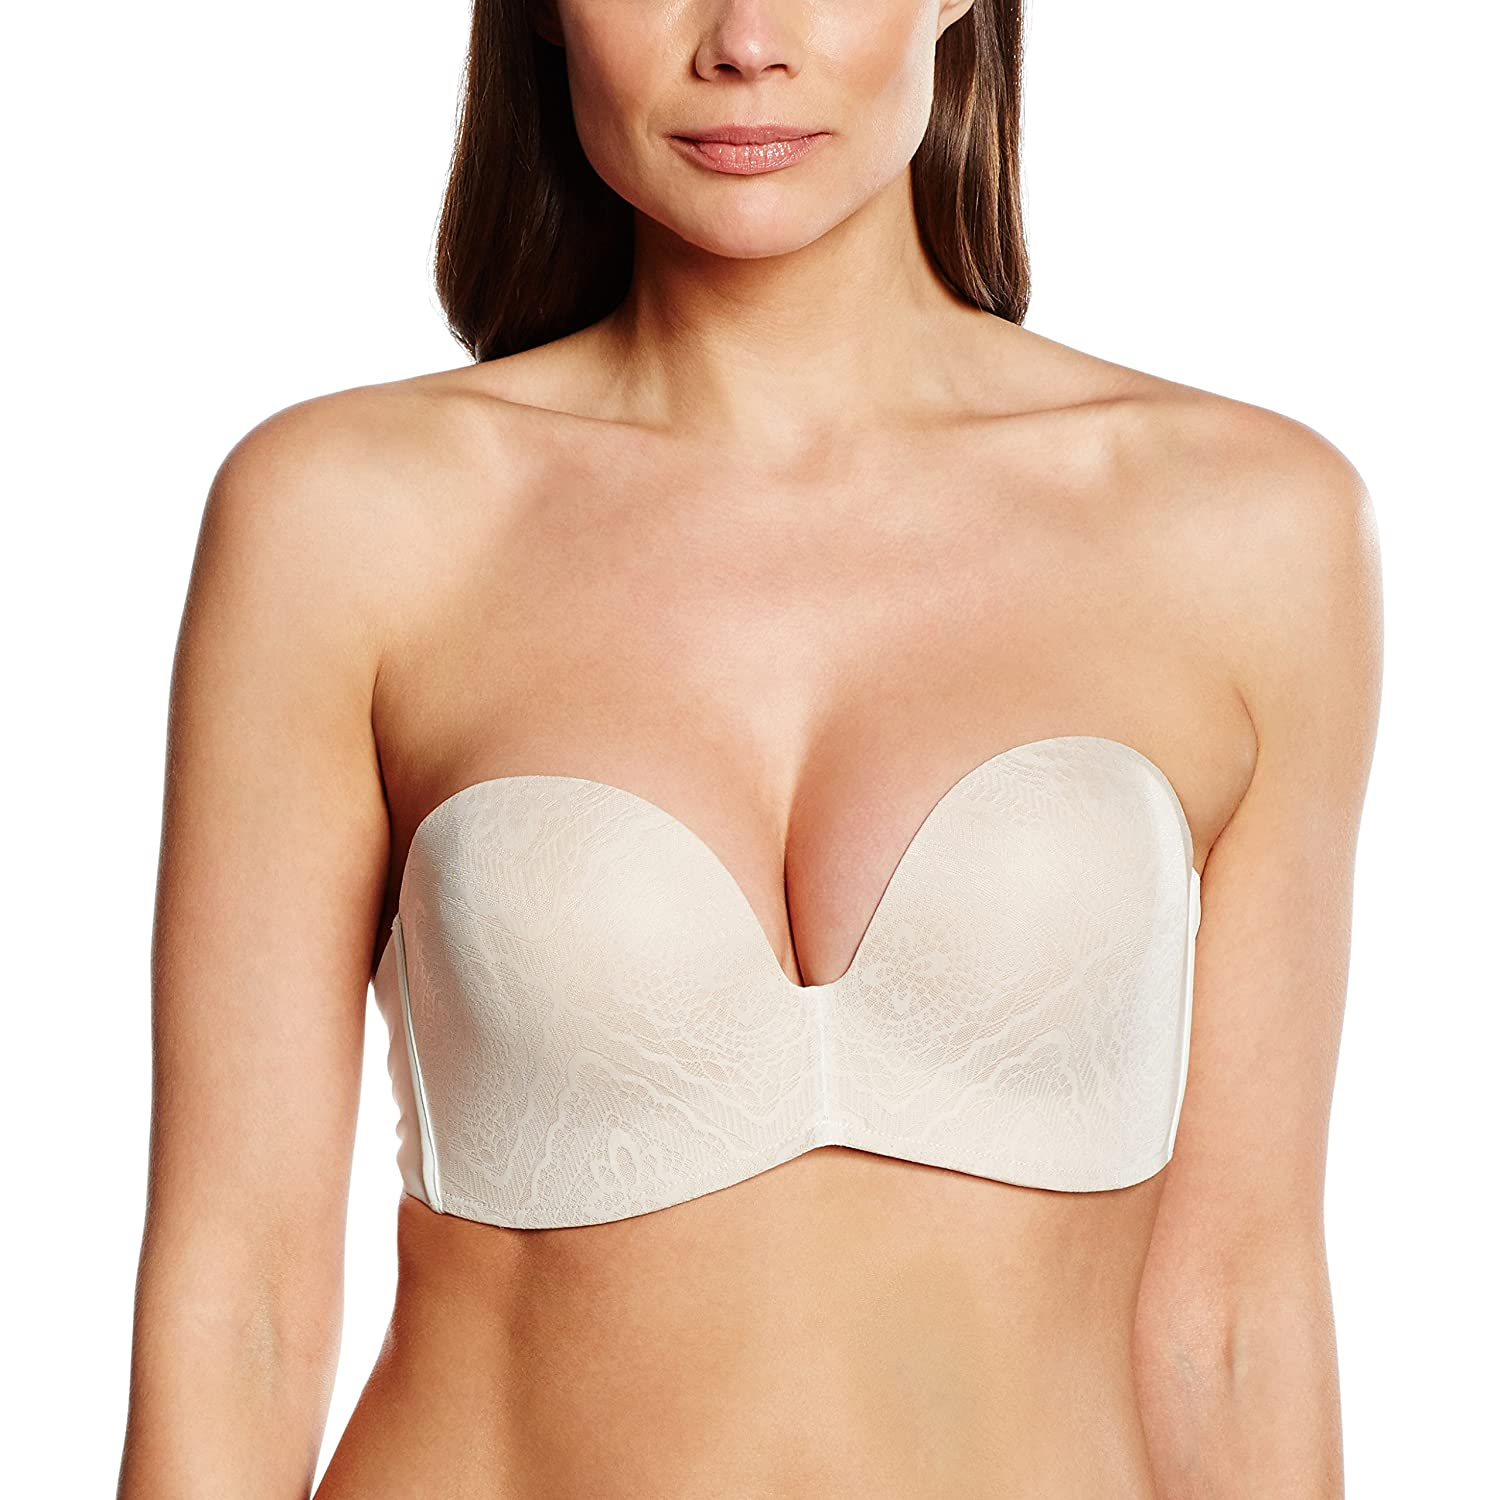 Wonderbra Damen BH Perfect Strapless Lace BH günstig kaufen